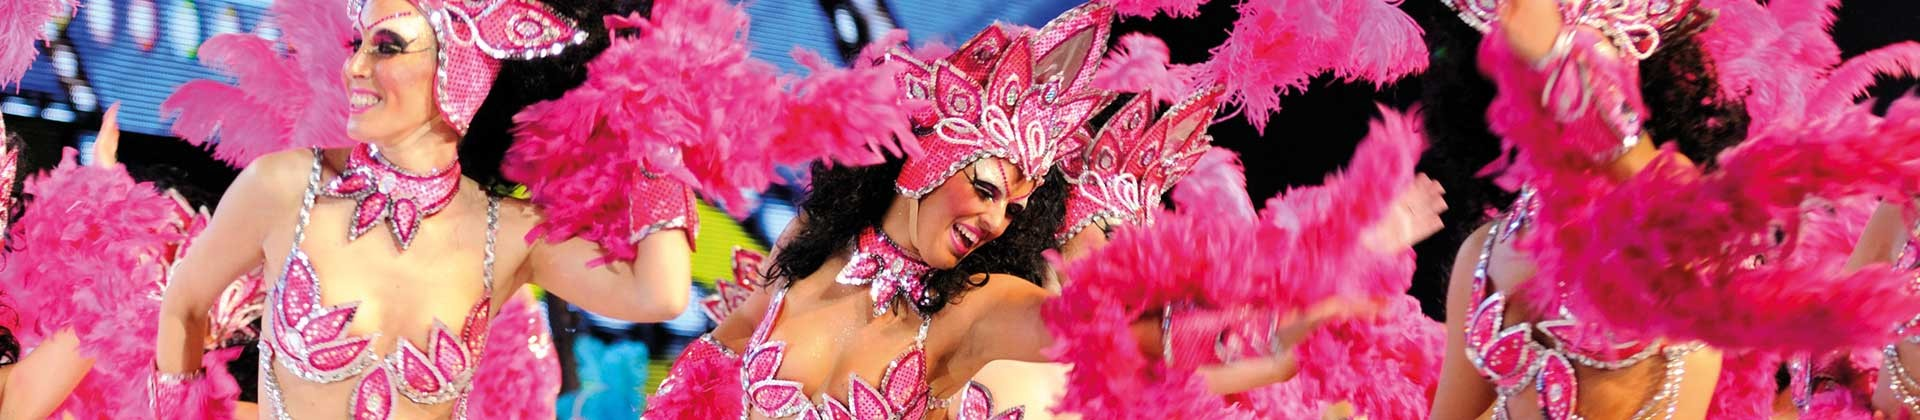 https://www.goodmorningtenerife.com/wp-content/uploads/2014/08/04_slide_carnival_GM_Tenerife-1920x420.jpg